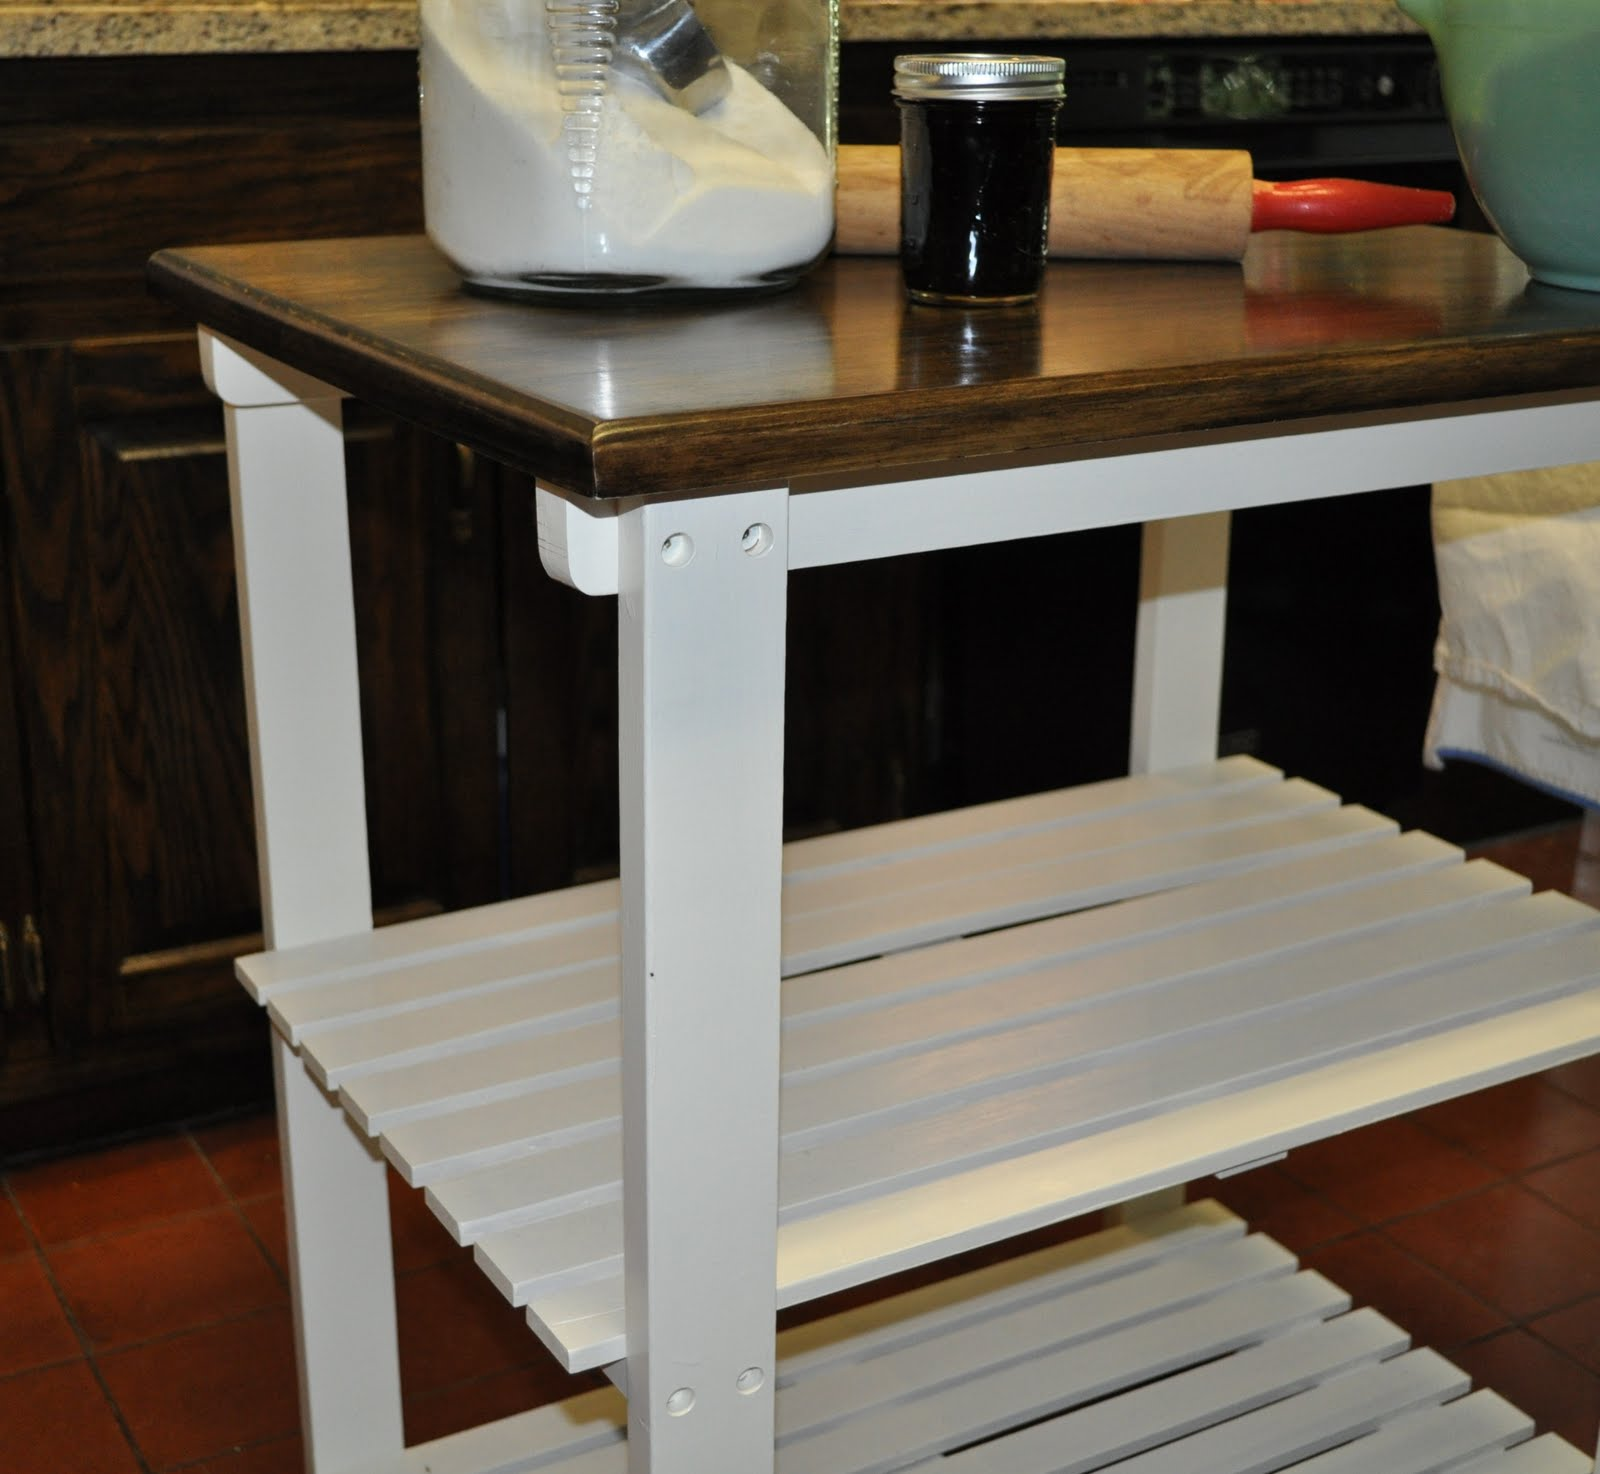 Remodelaholic | Small Table Kitchen Island Redo! Guest